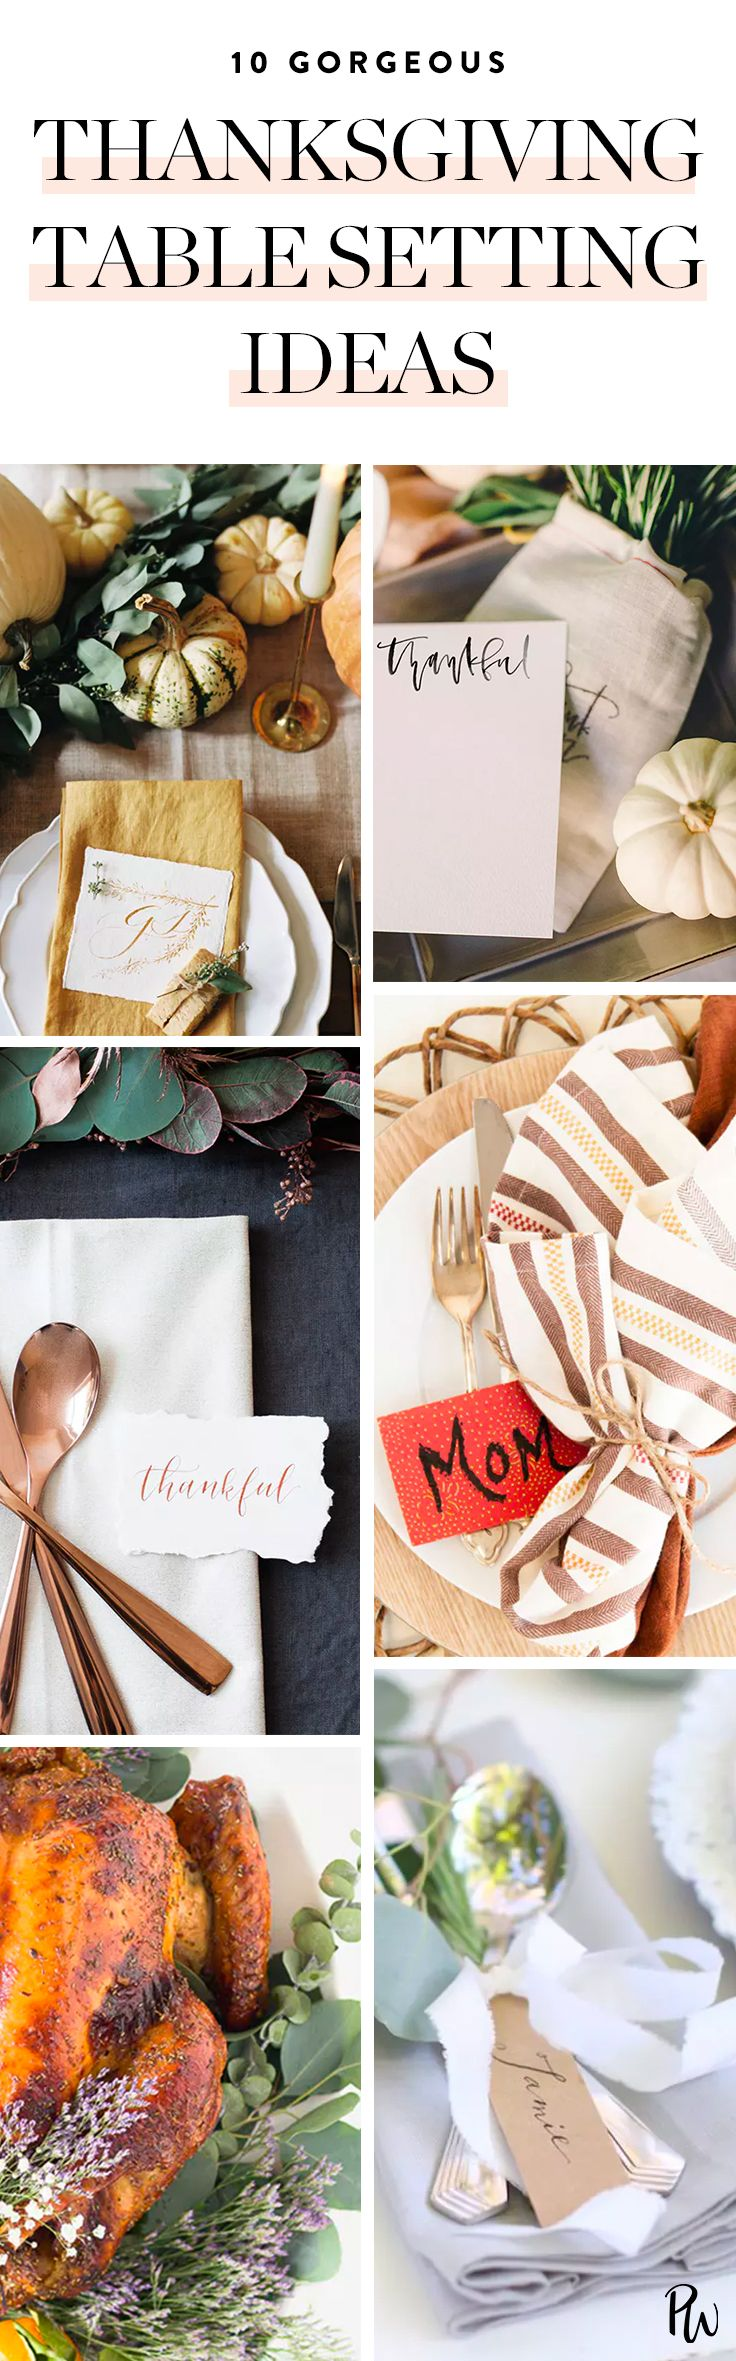 Here are 10 gorgeous and original Thanksgiving table setting ideas to up your fall decor game.